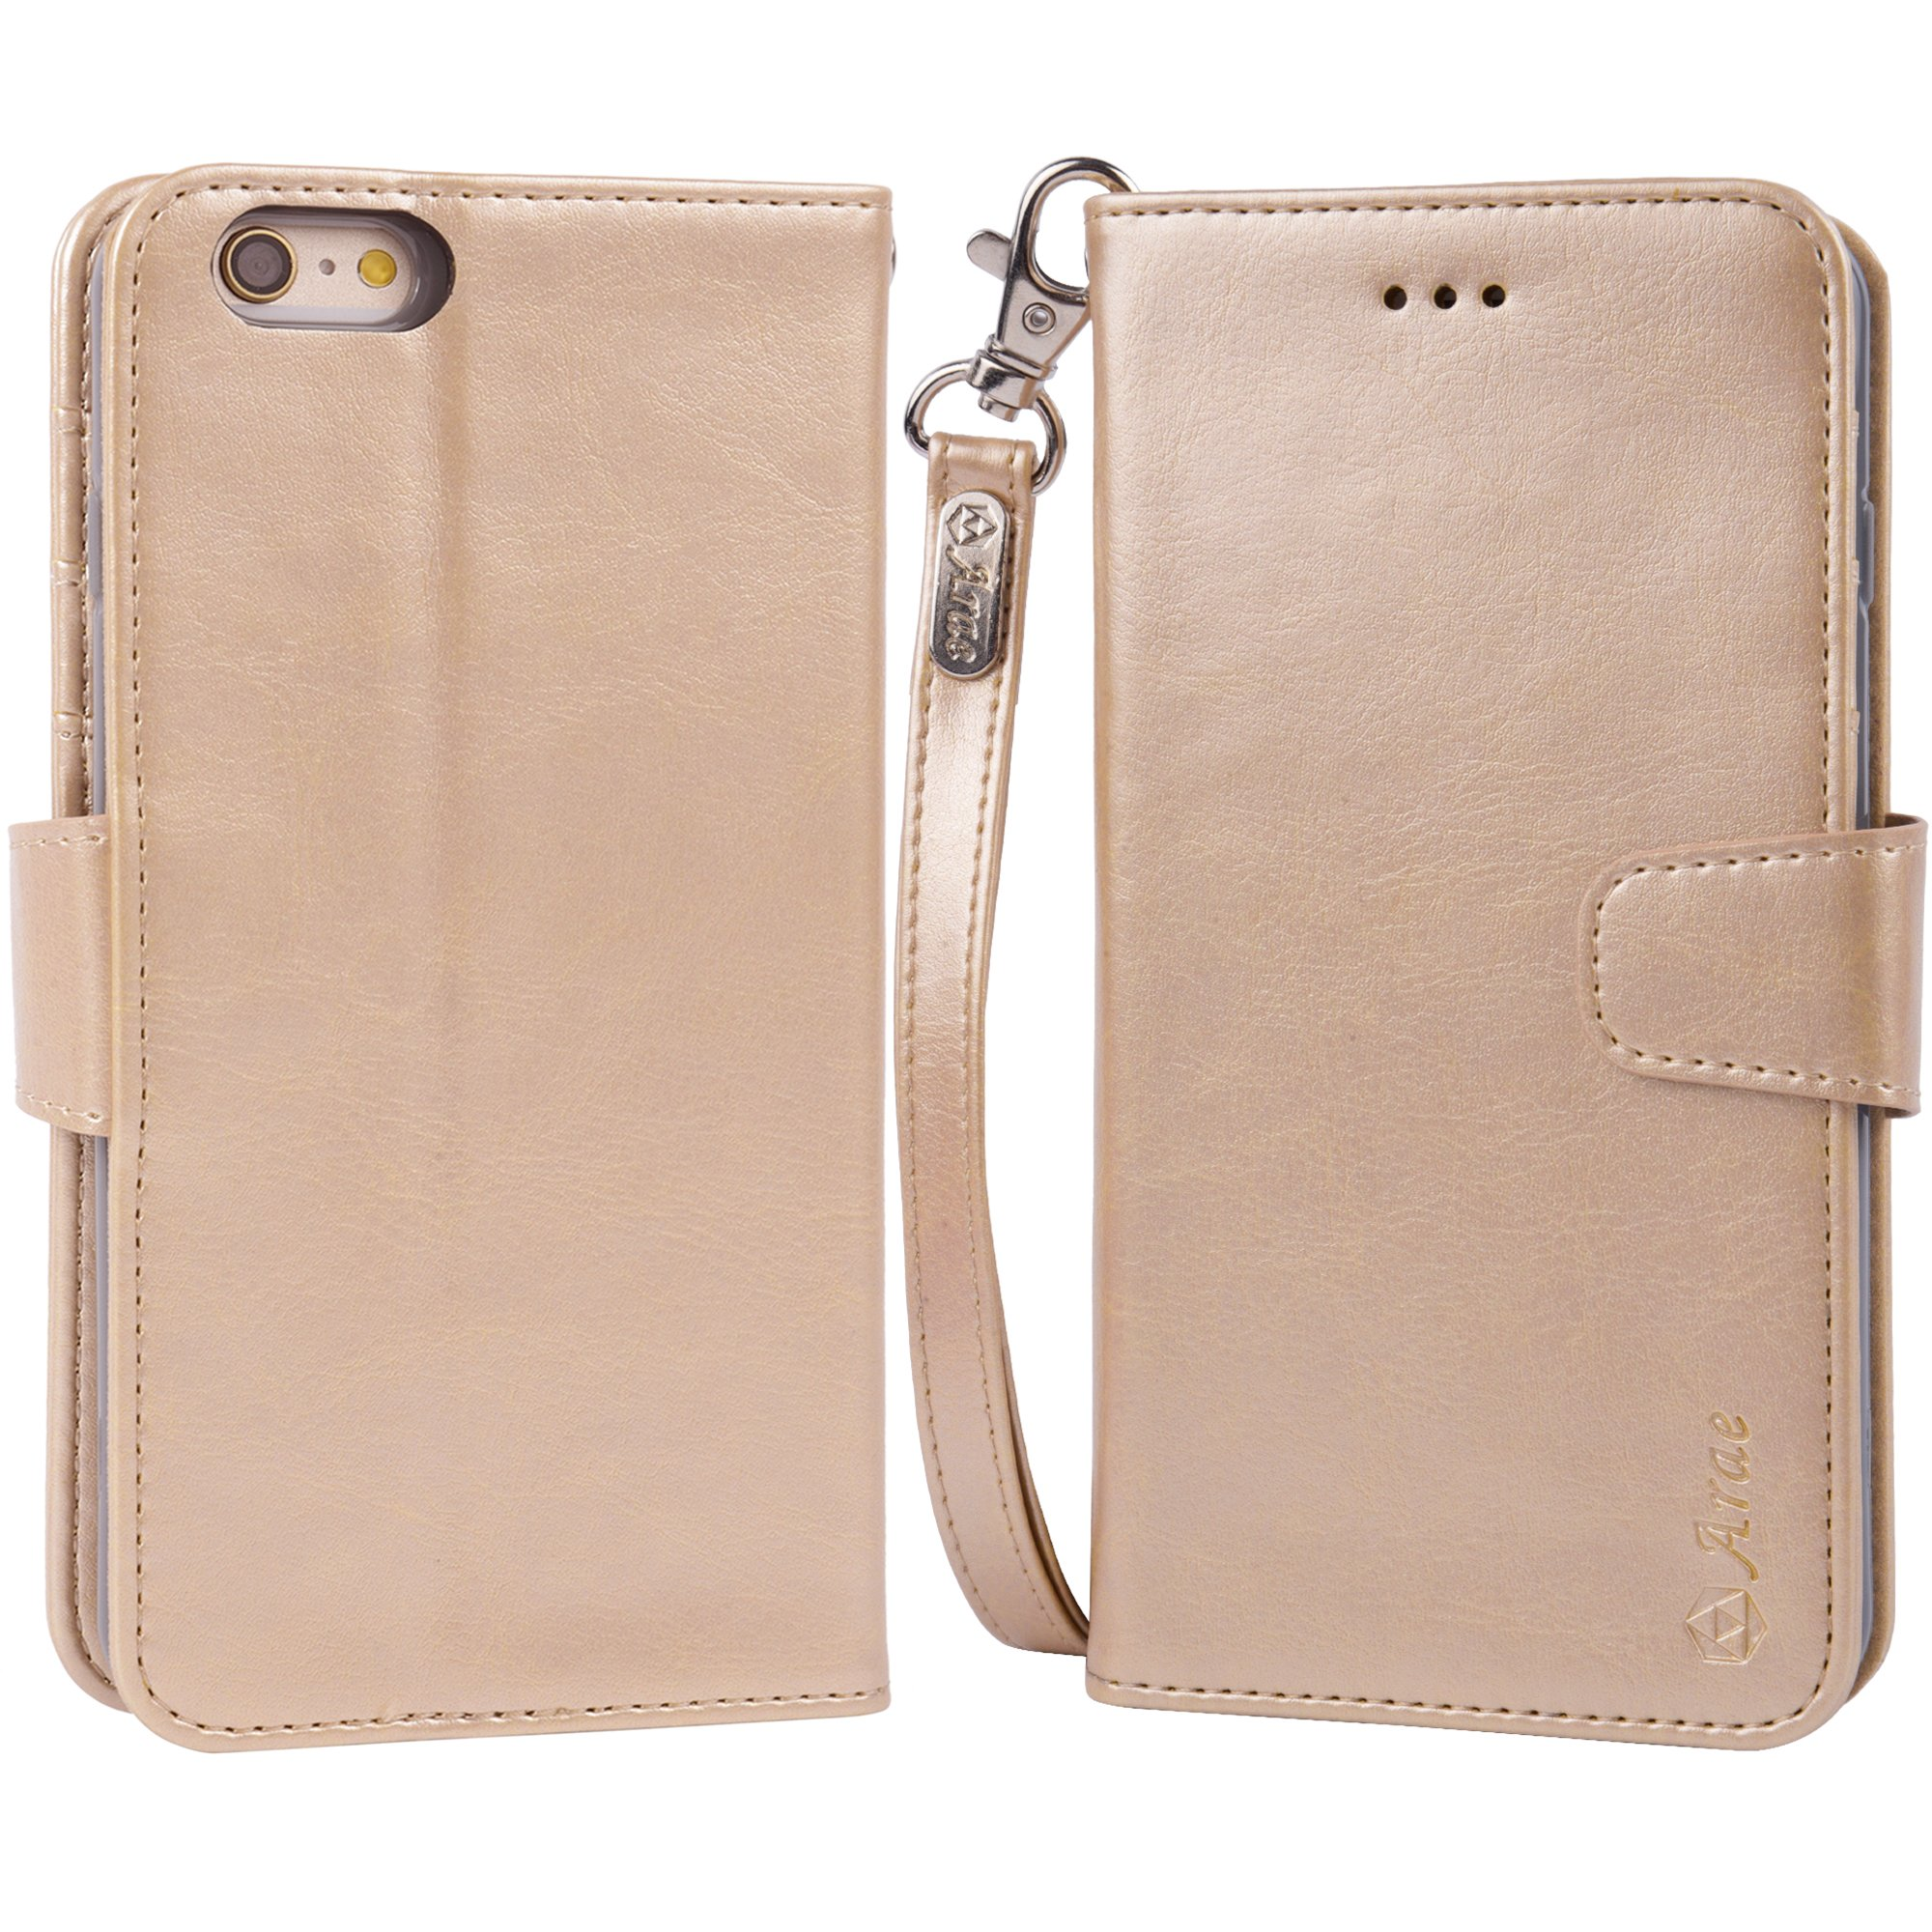 Iphone 6s Plus Case, iphone 6 plus case, Arae [Wrist Strap] Flip Folio [Kickstand Feature] PU leather wallet case with ID&Credit Card Pockets For Apple Iphone 6 plus/6S Plus 5.5 (champaign gold) by Arae (Image #6)